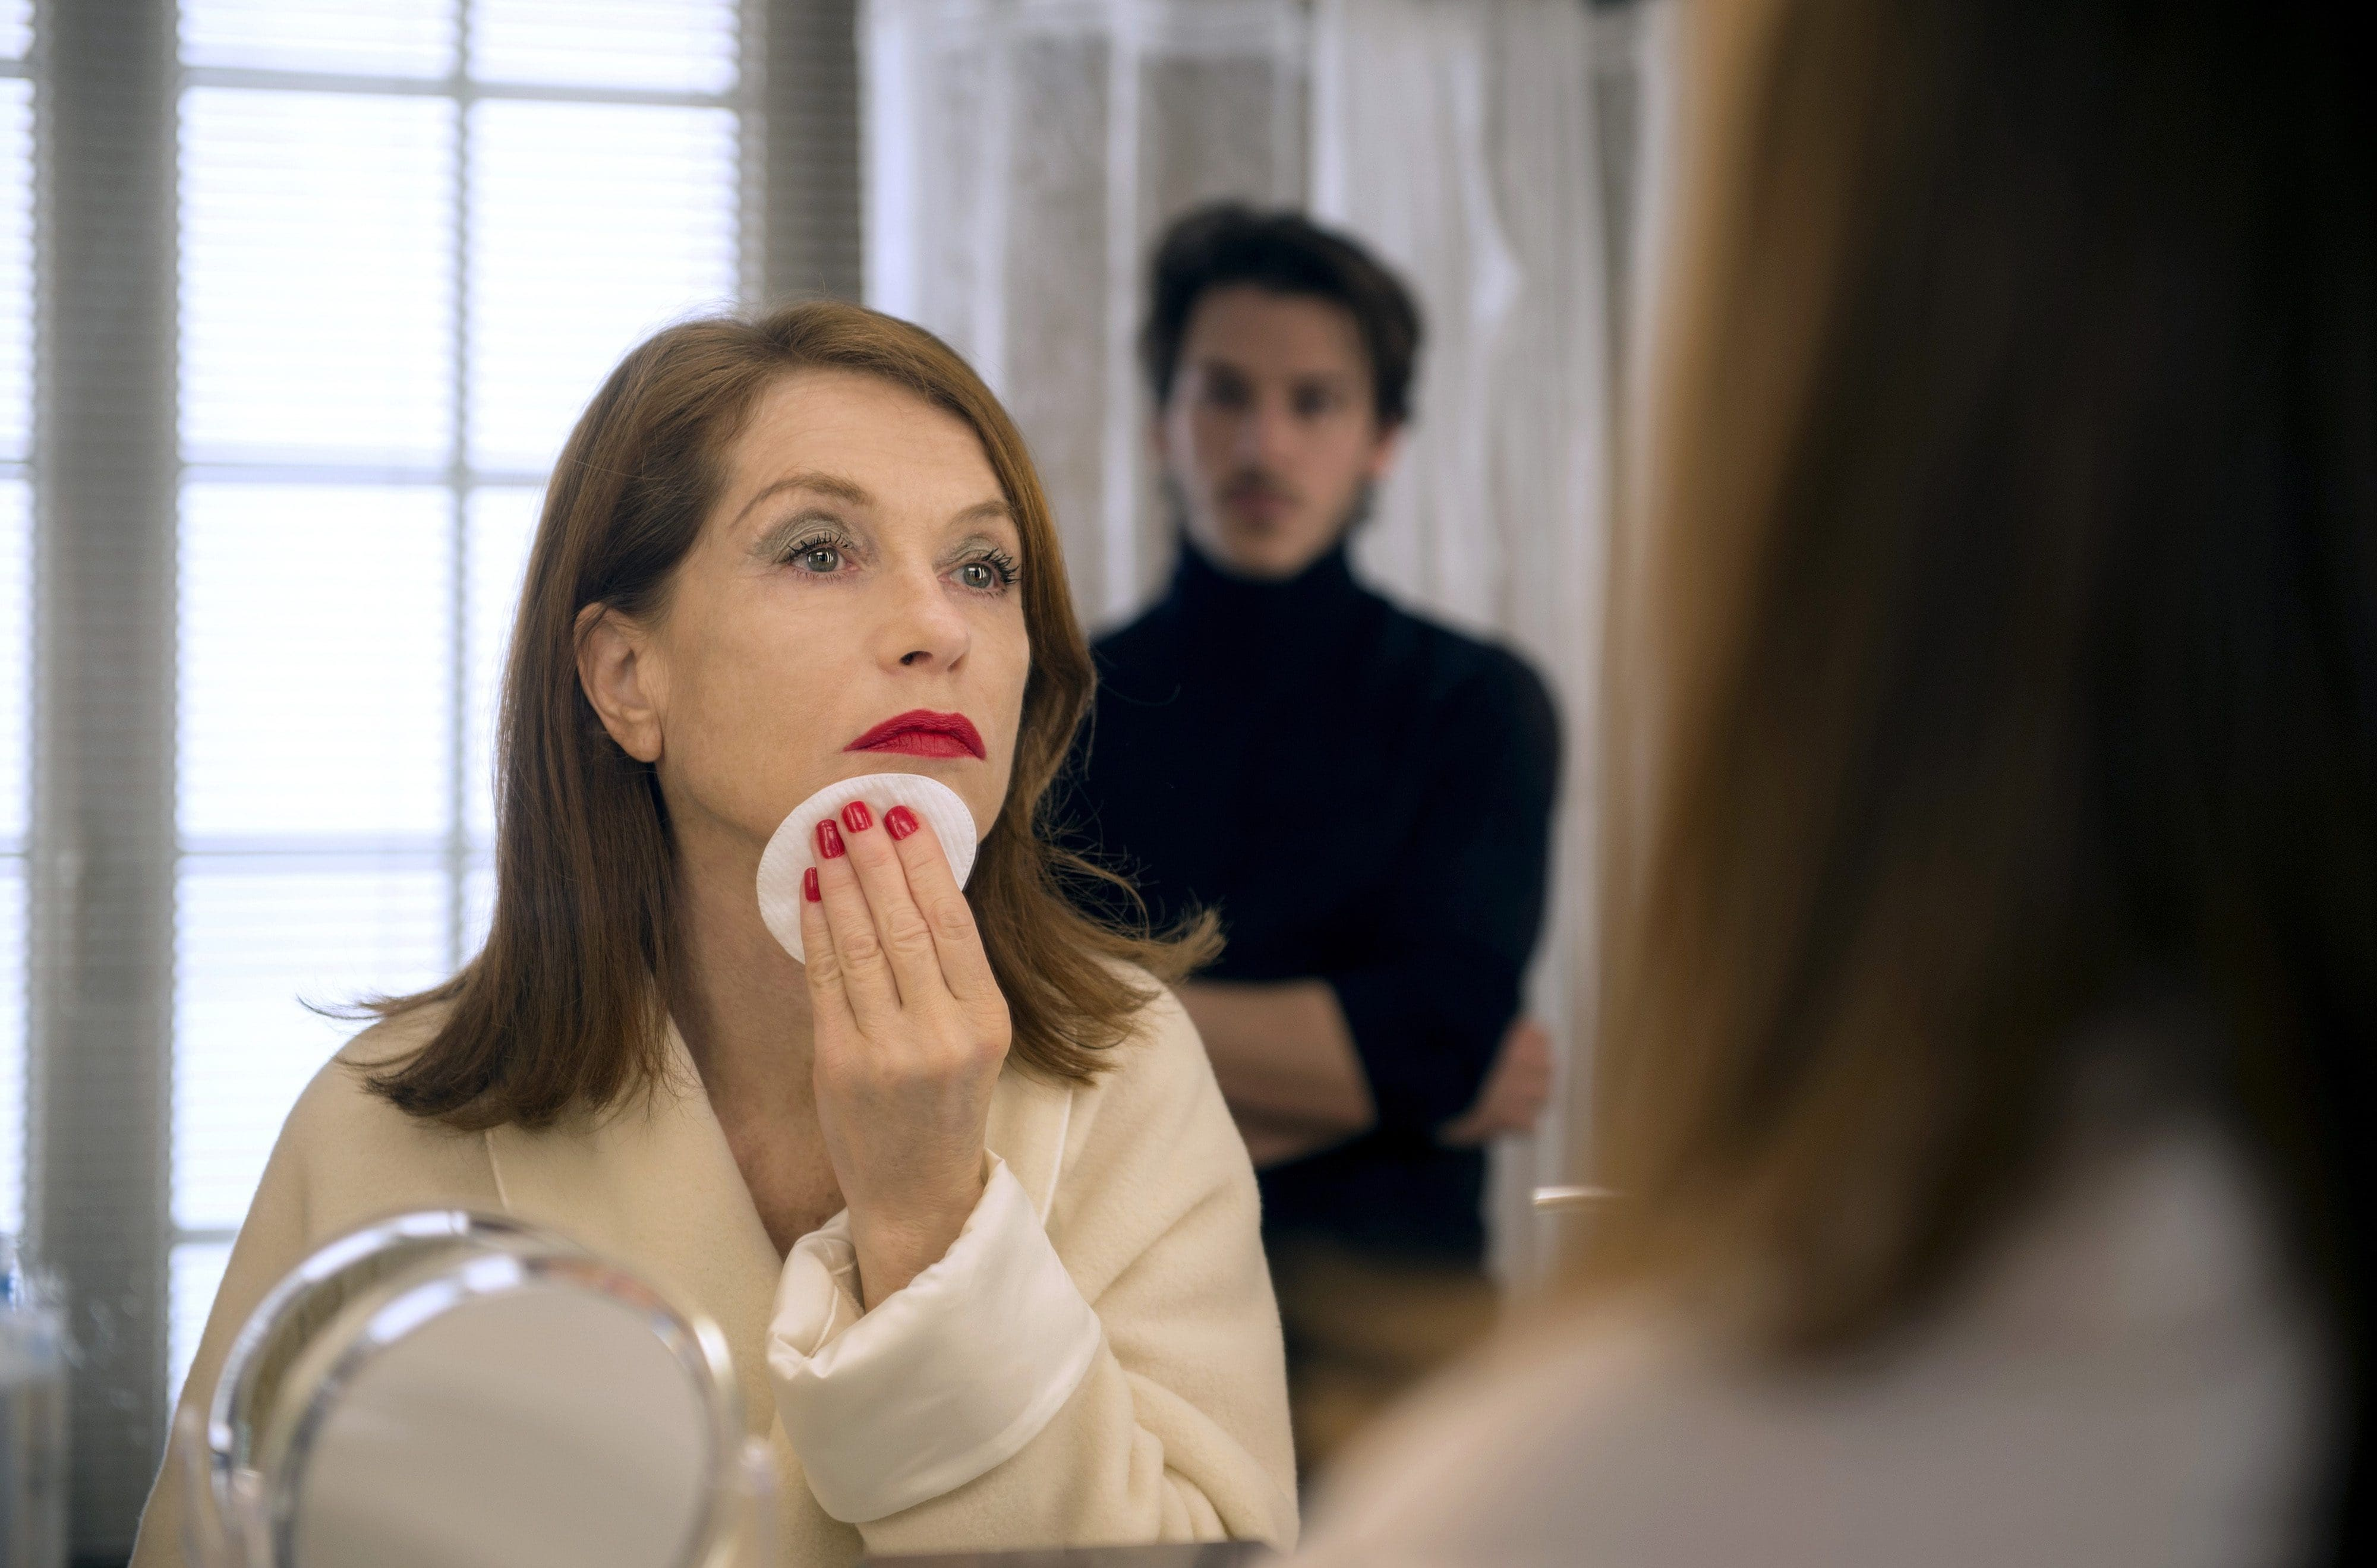 Isabelle staring into a bathroom mirror in a screenshot from her film Blanche Comme Neige